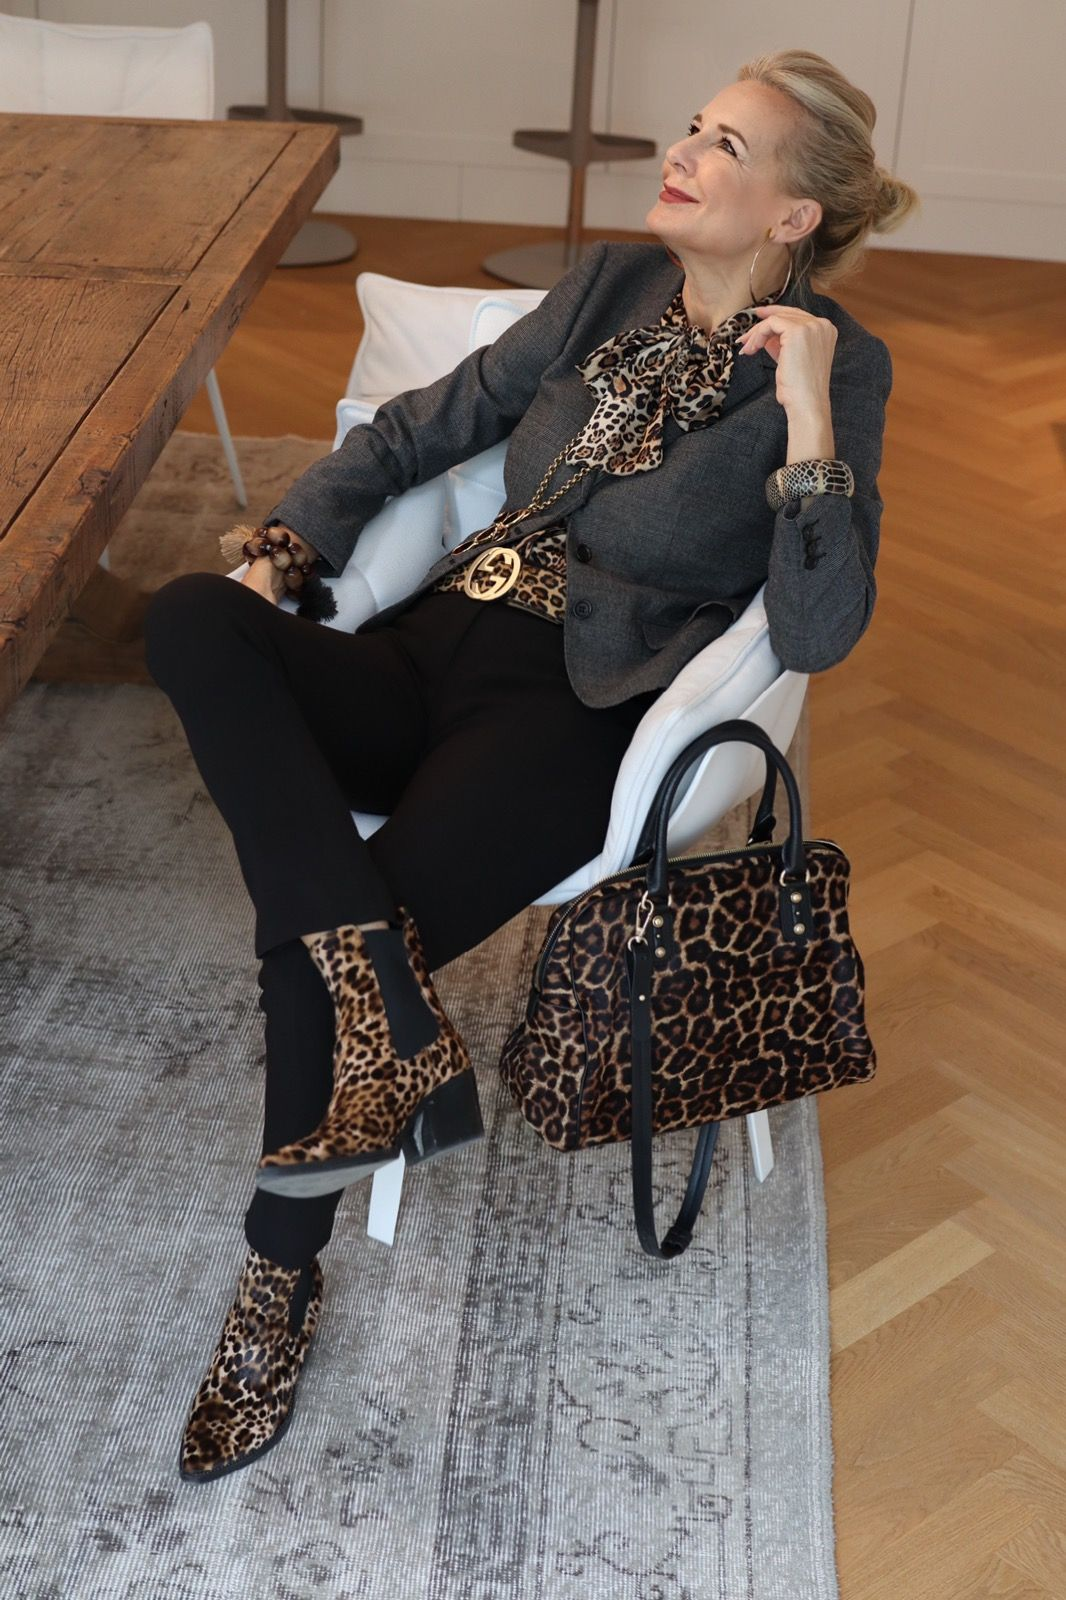 Photo of Bibi Horst, the expert for styling and anti-aging 45+ | Style experts for styling and anti-aging 45+